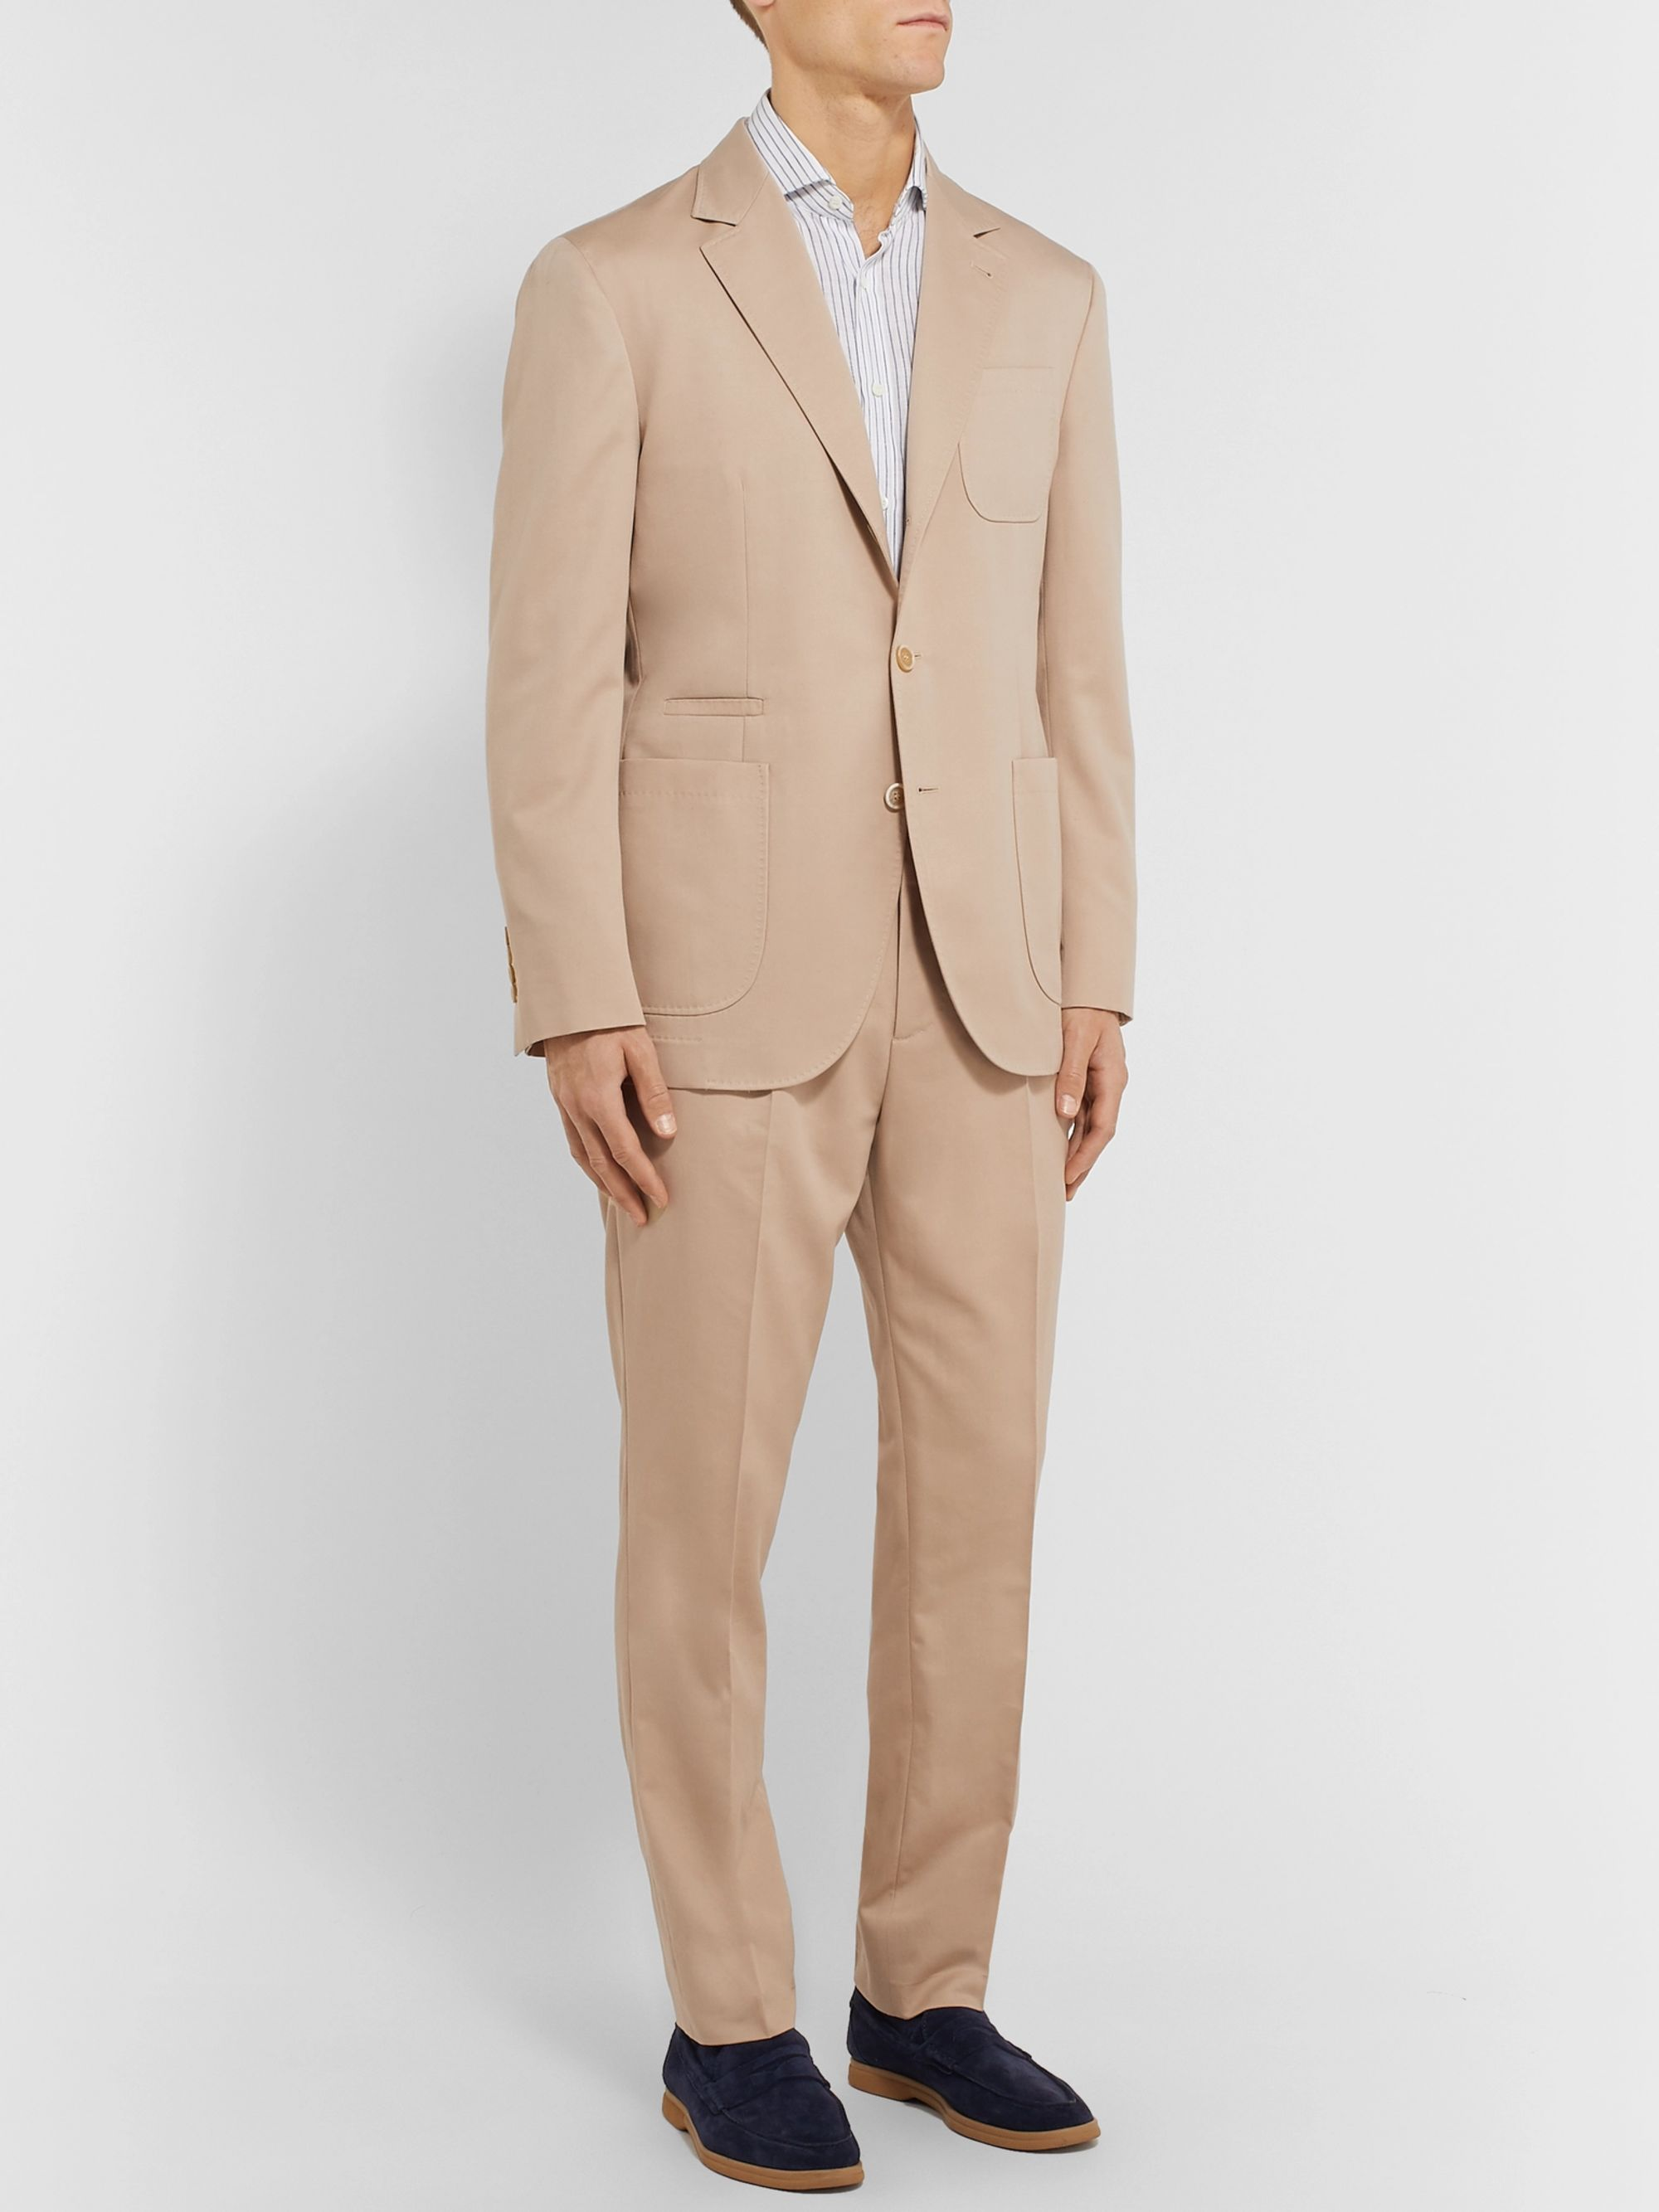 Brunello Cucinelli Beige Wool and Cotton-Blend Suit Jacket